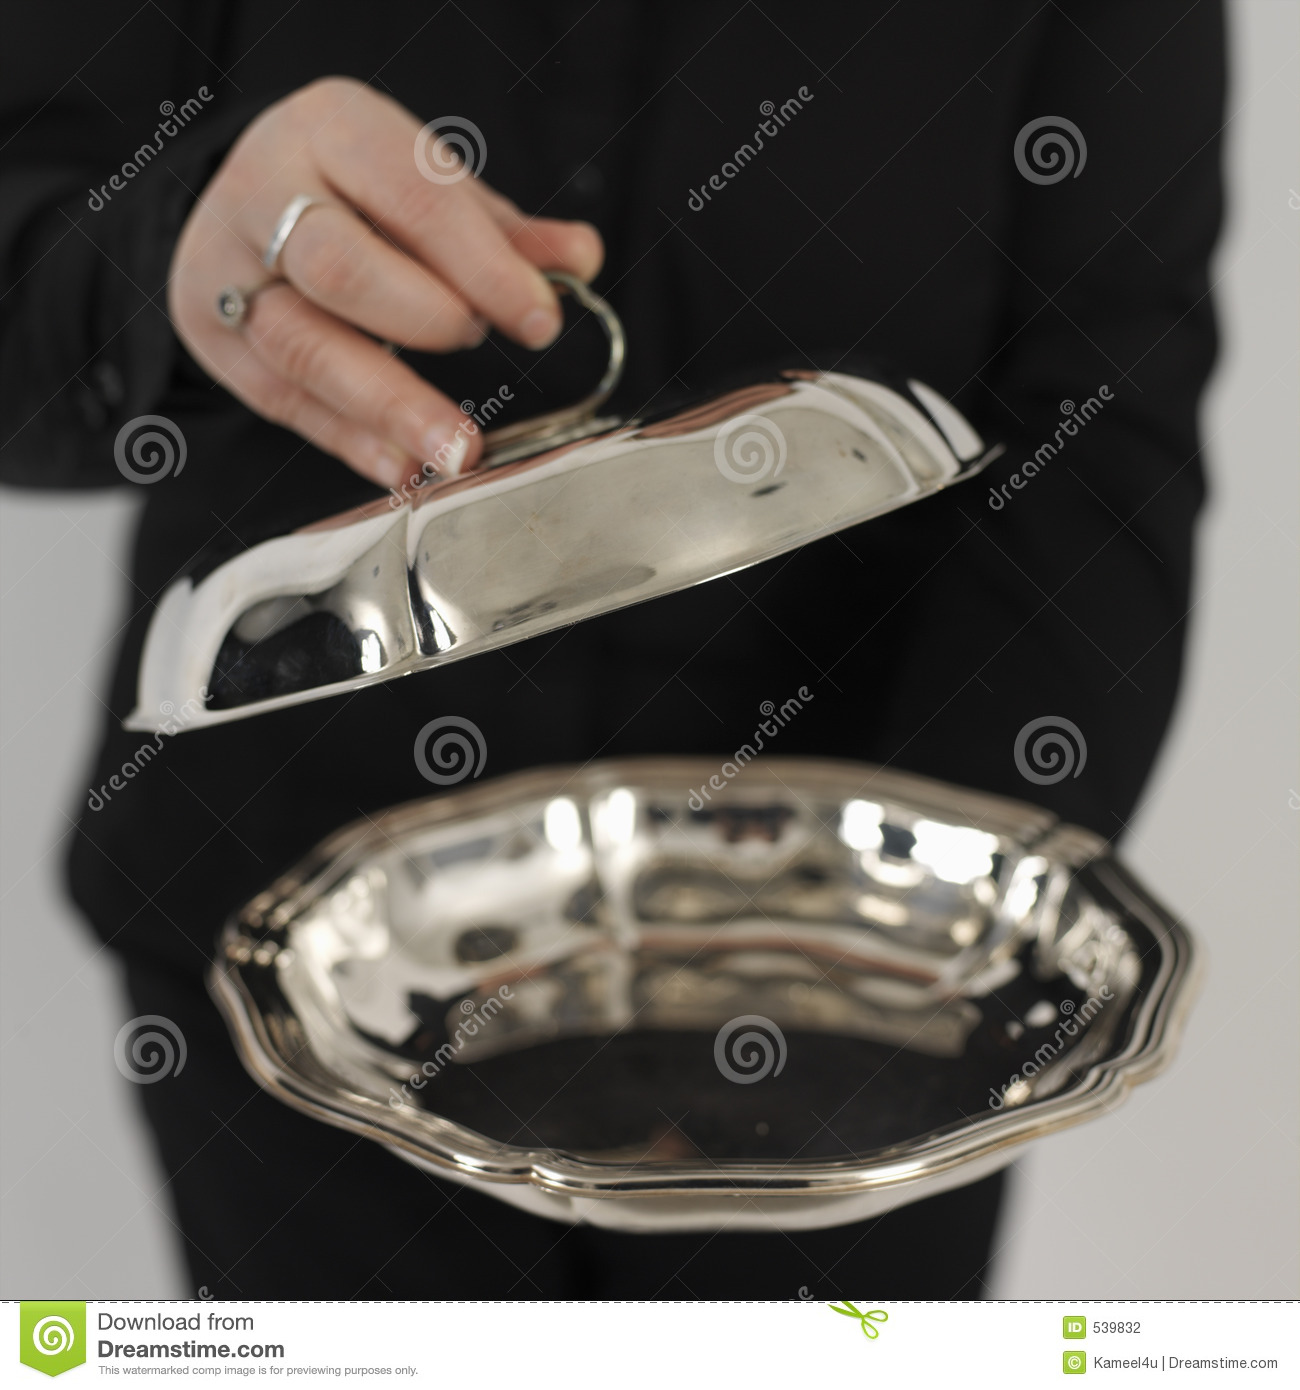 Silver Plate Stock Photography - Image: 539832